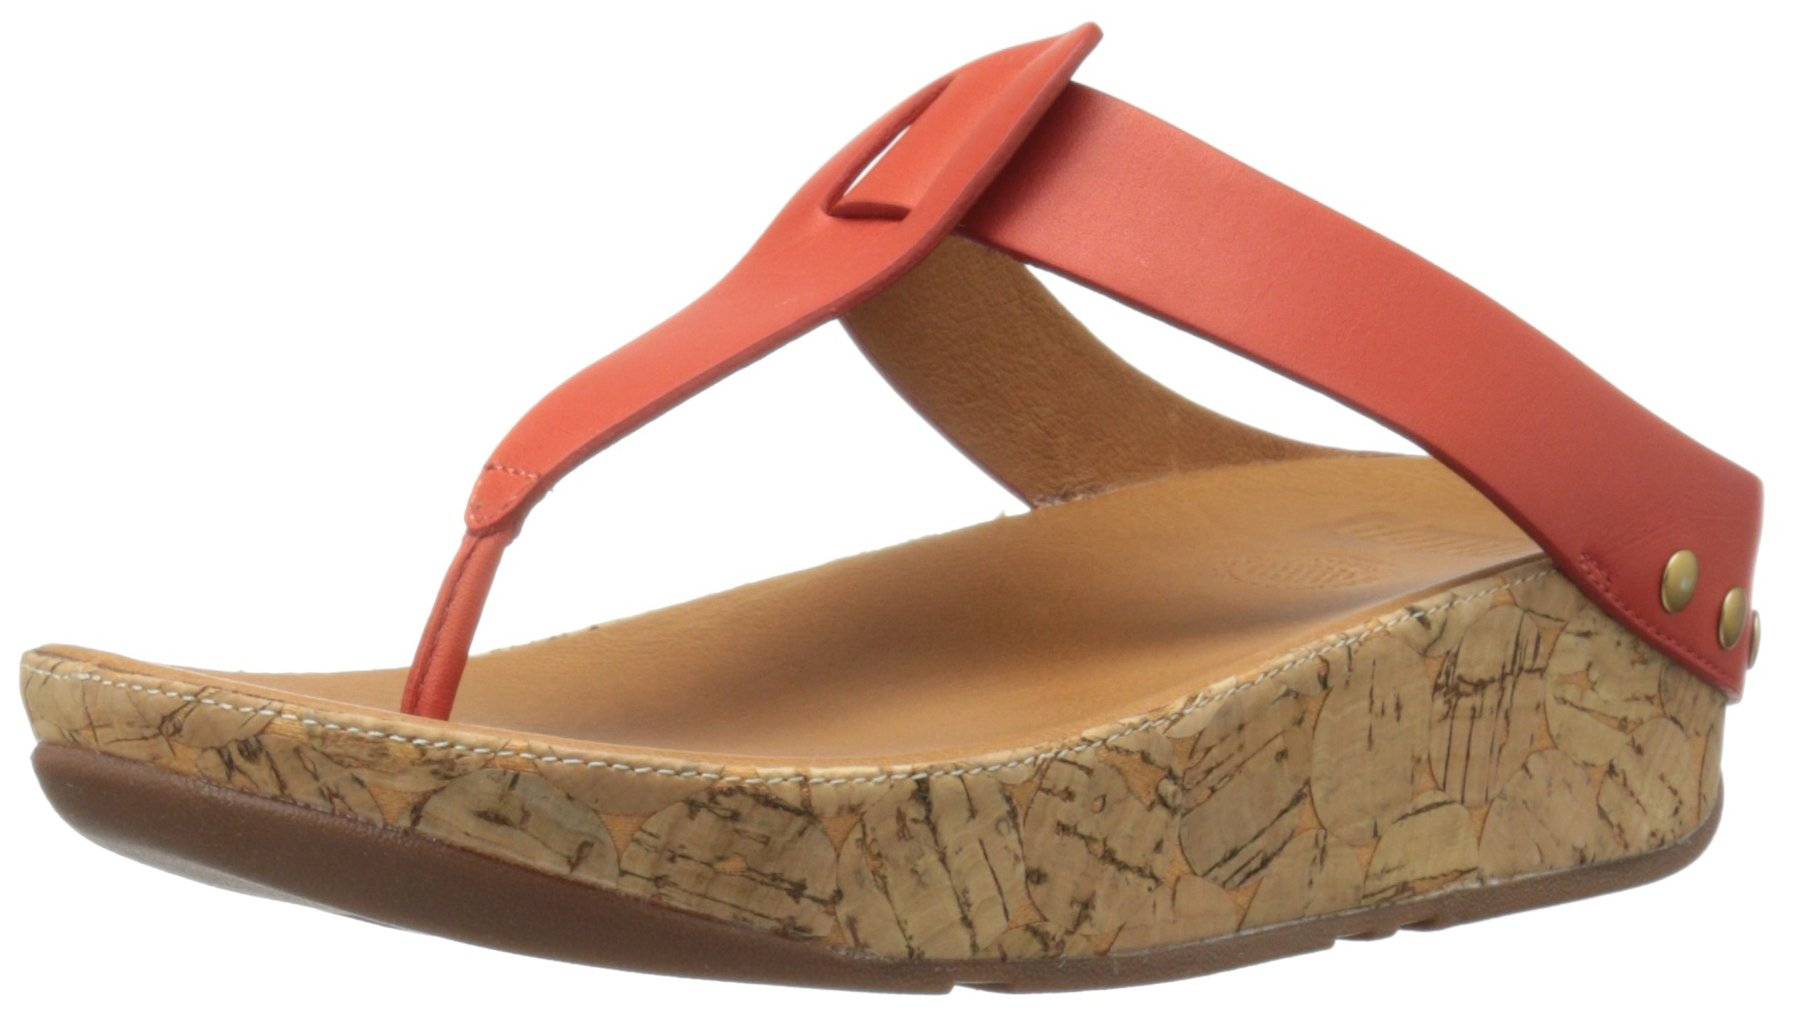 FitFlop Women's Ibiza Cork Leather Toe-Thong Sandals Flip Flop, Flame, 5 M US